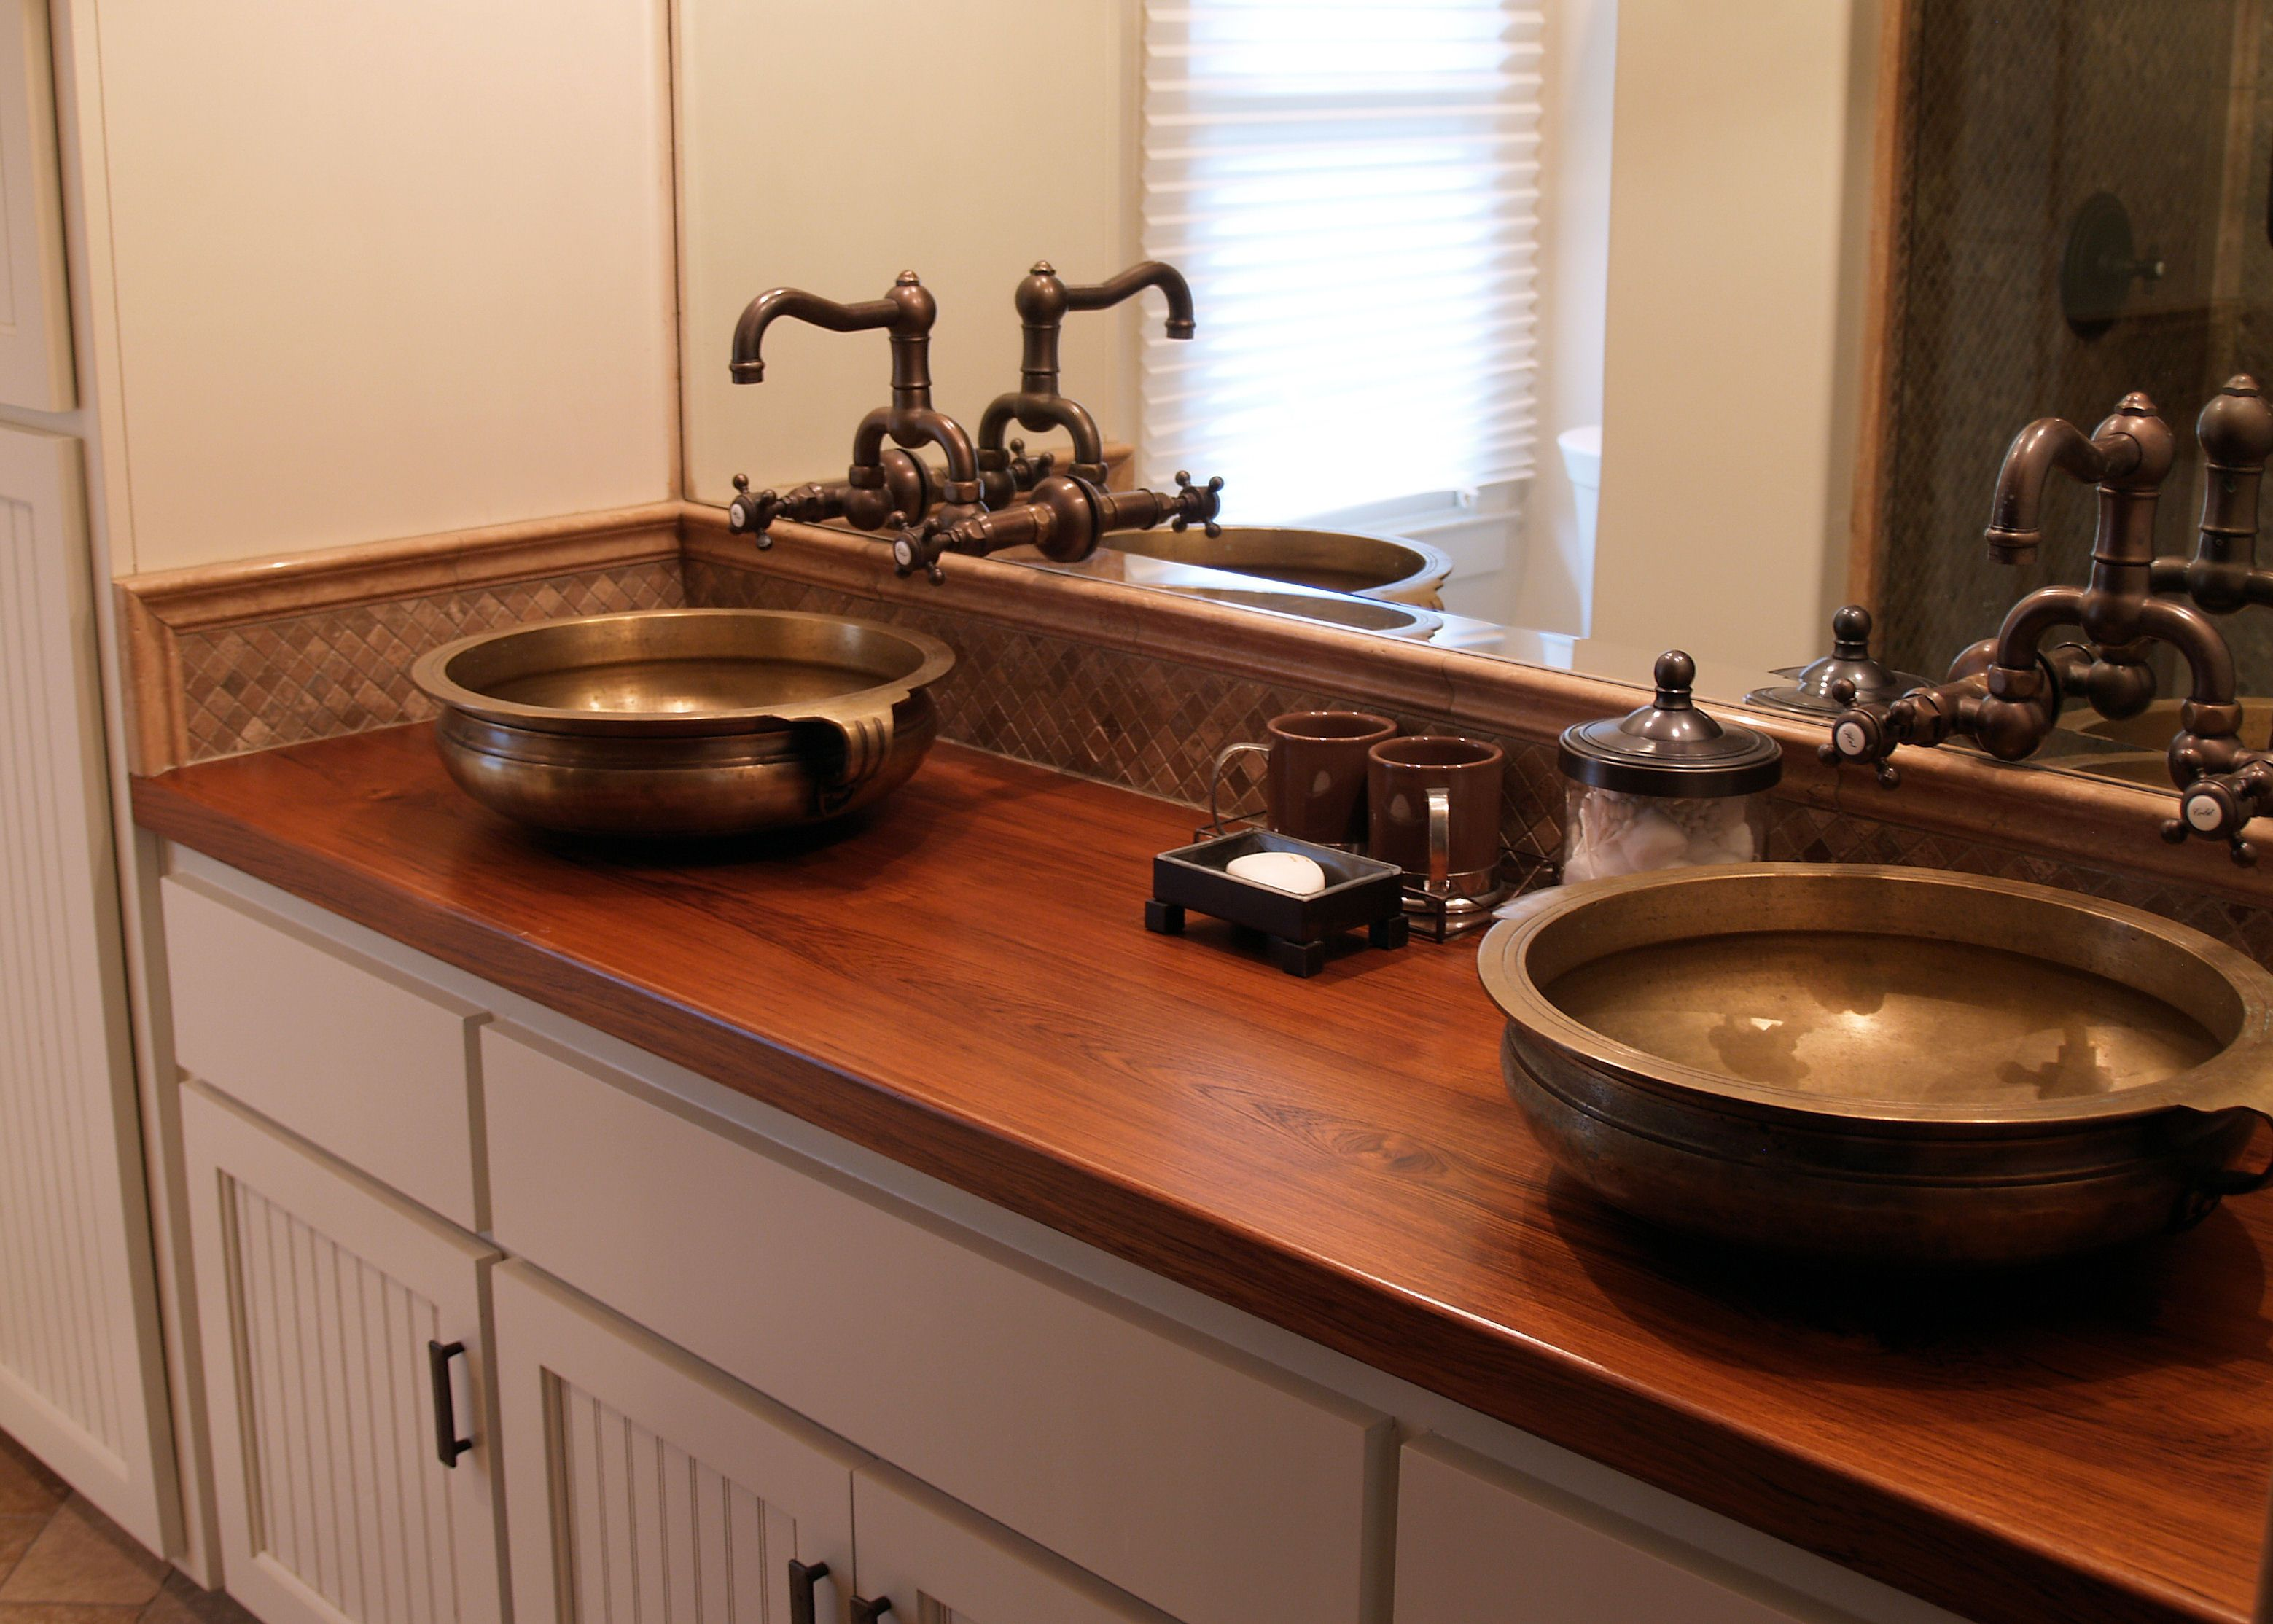 Best Wood For Butcher Block Countertops: Teak Wood Countertop Photo Gallery, By DeVos Custom